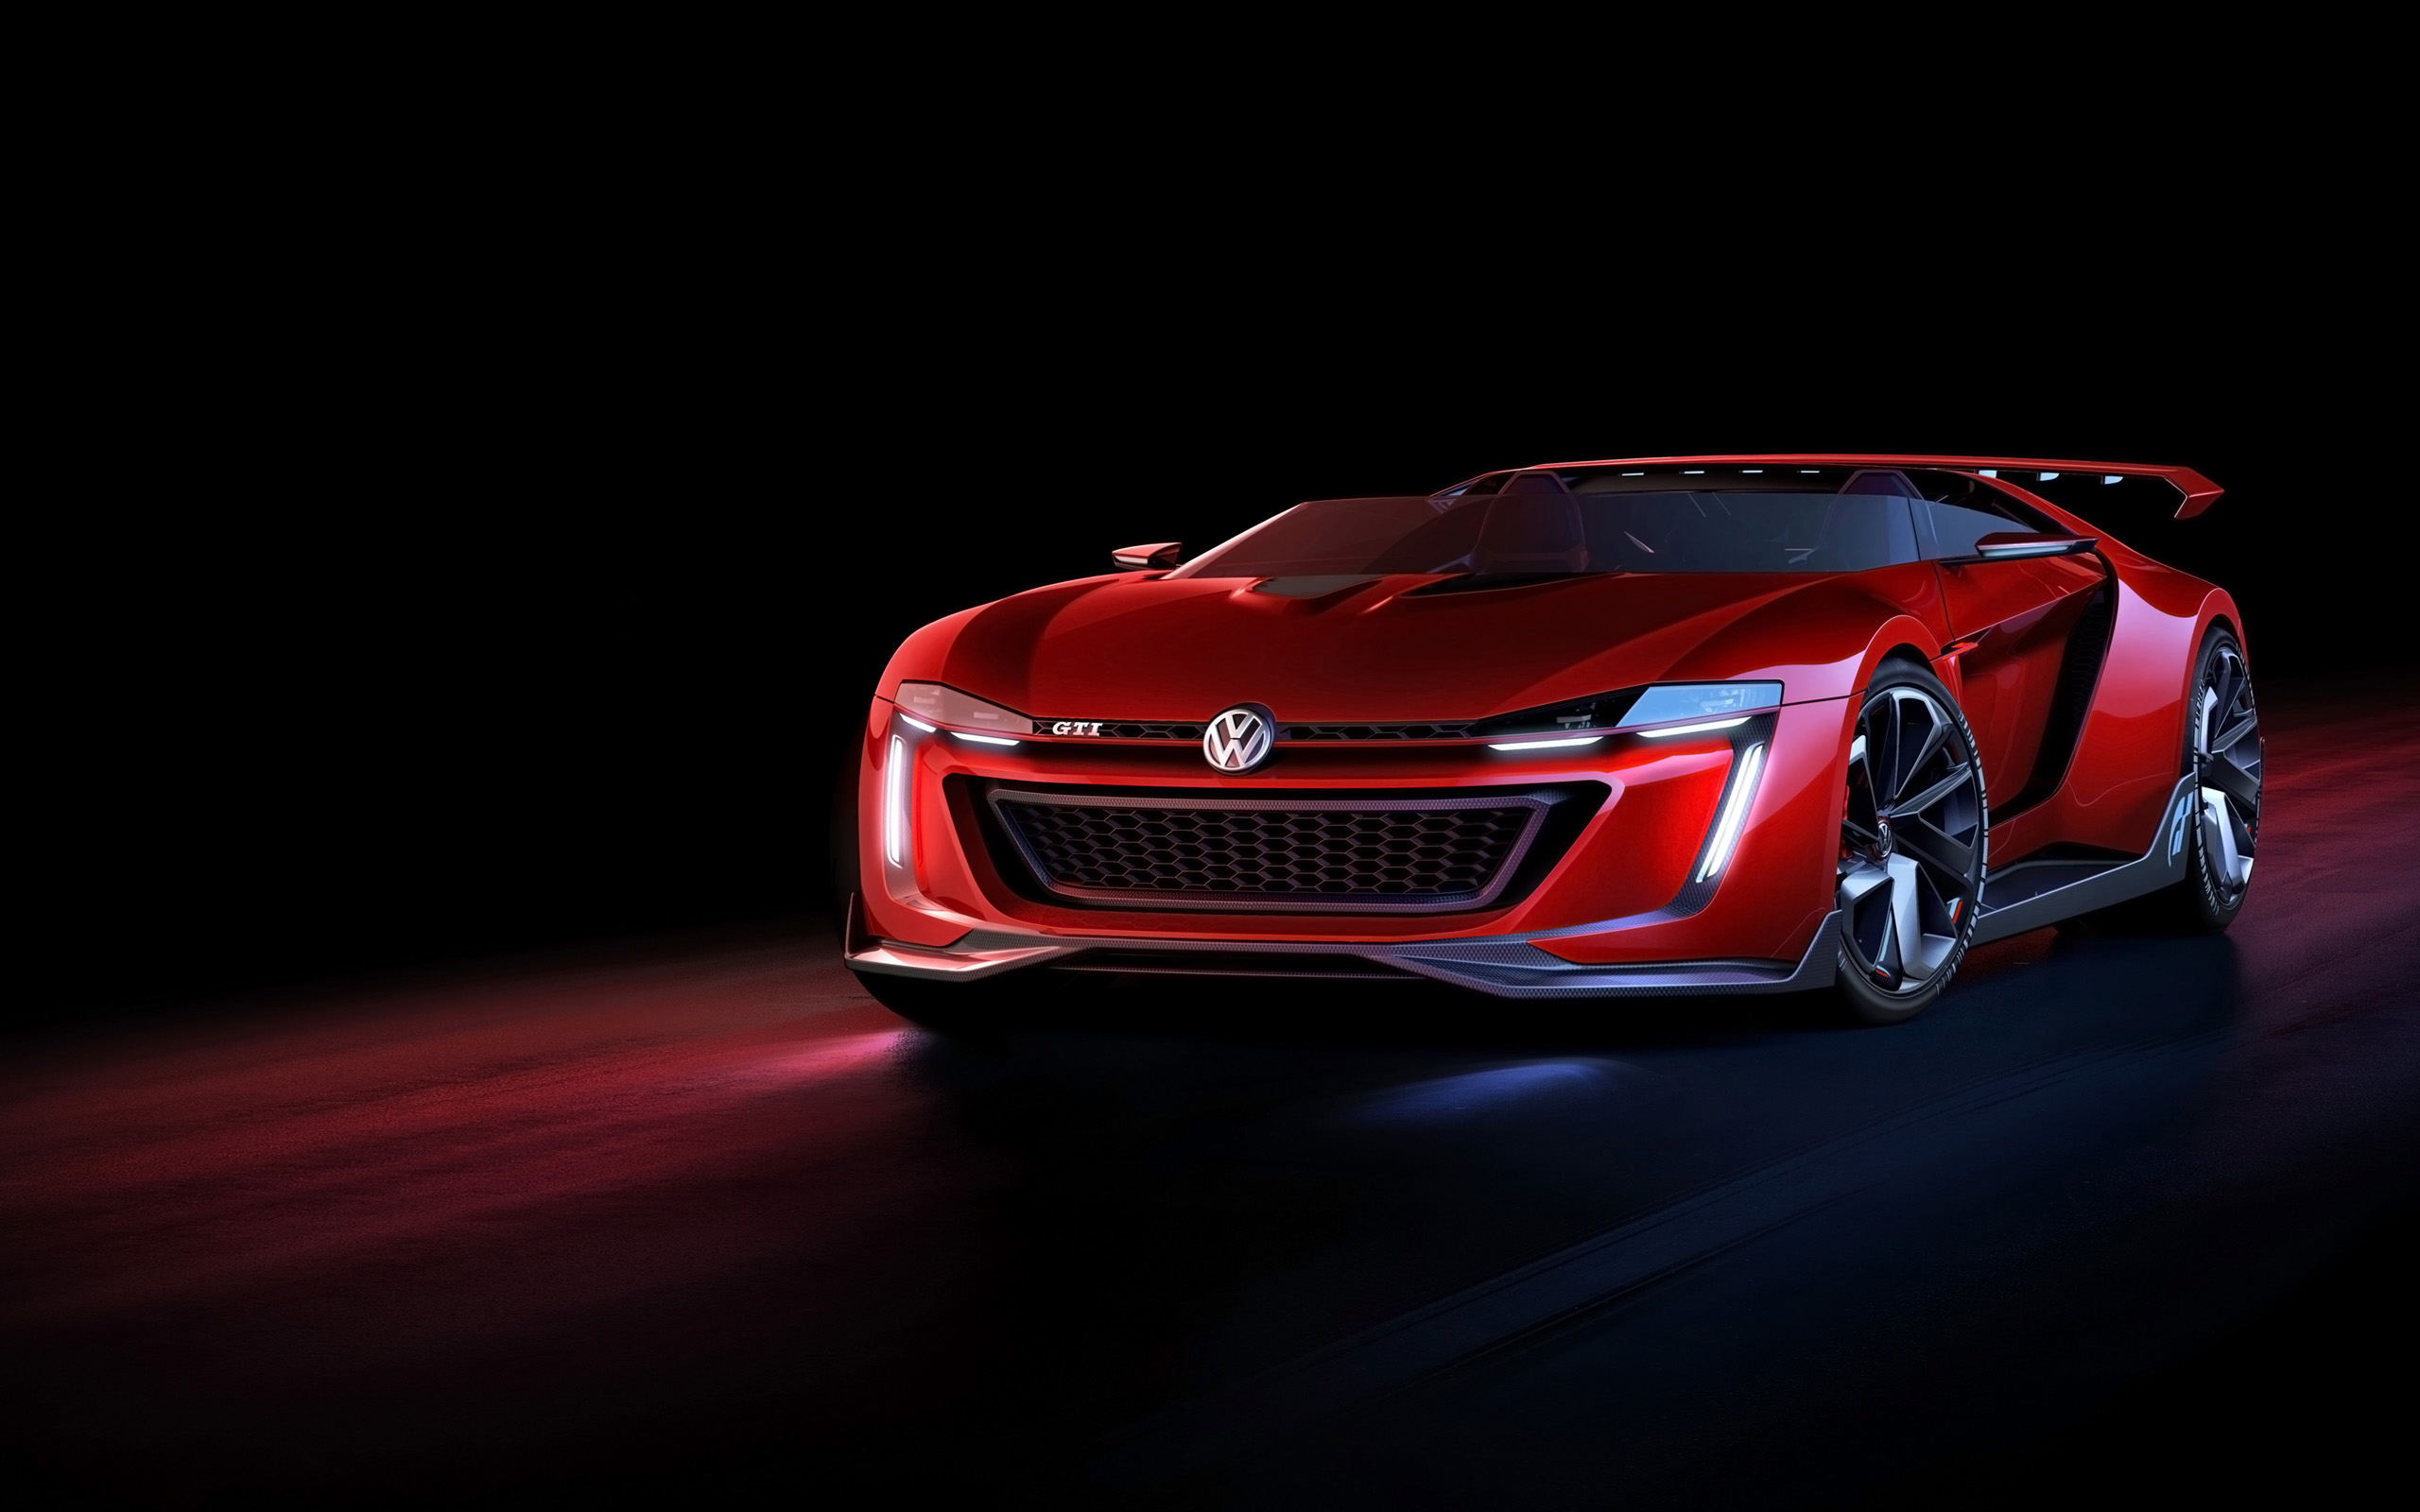 Volkswagen Gti Roadster Wide on Vw Beetle Dune Concept